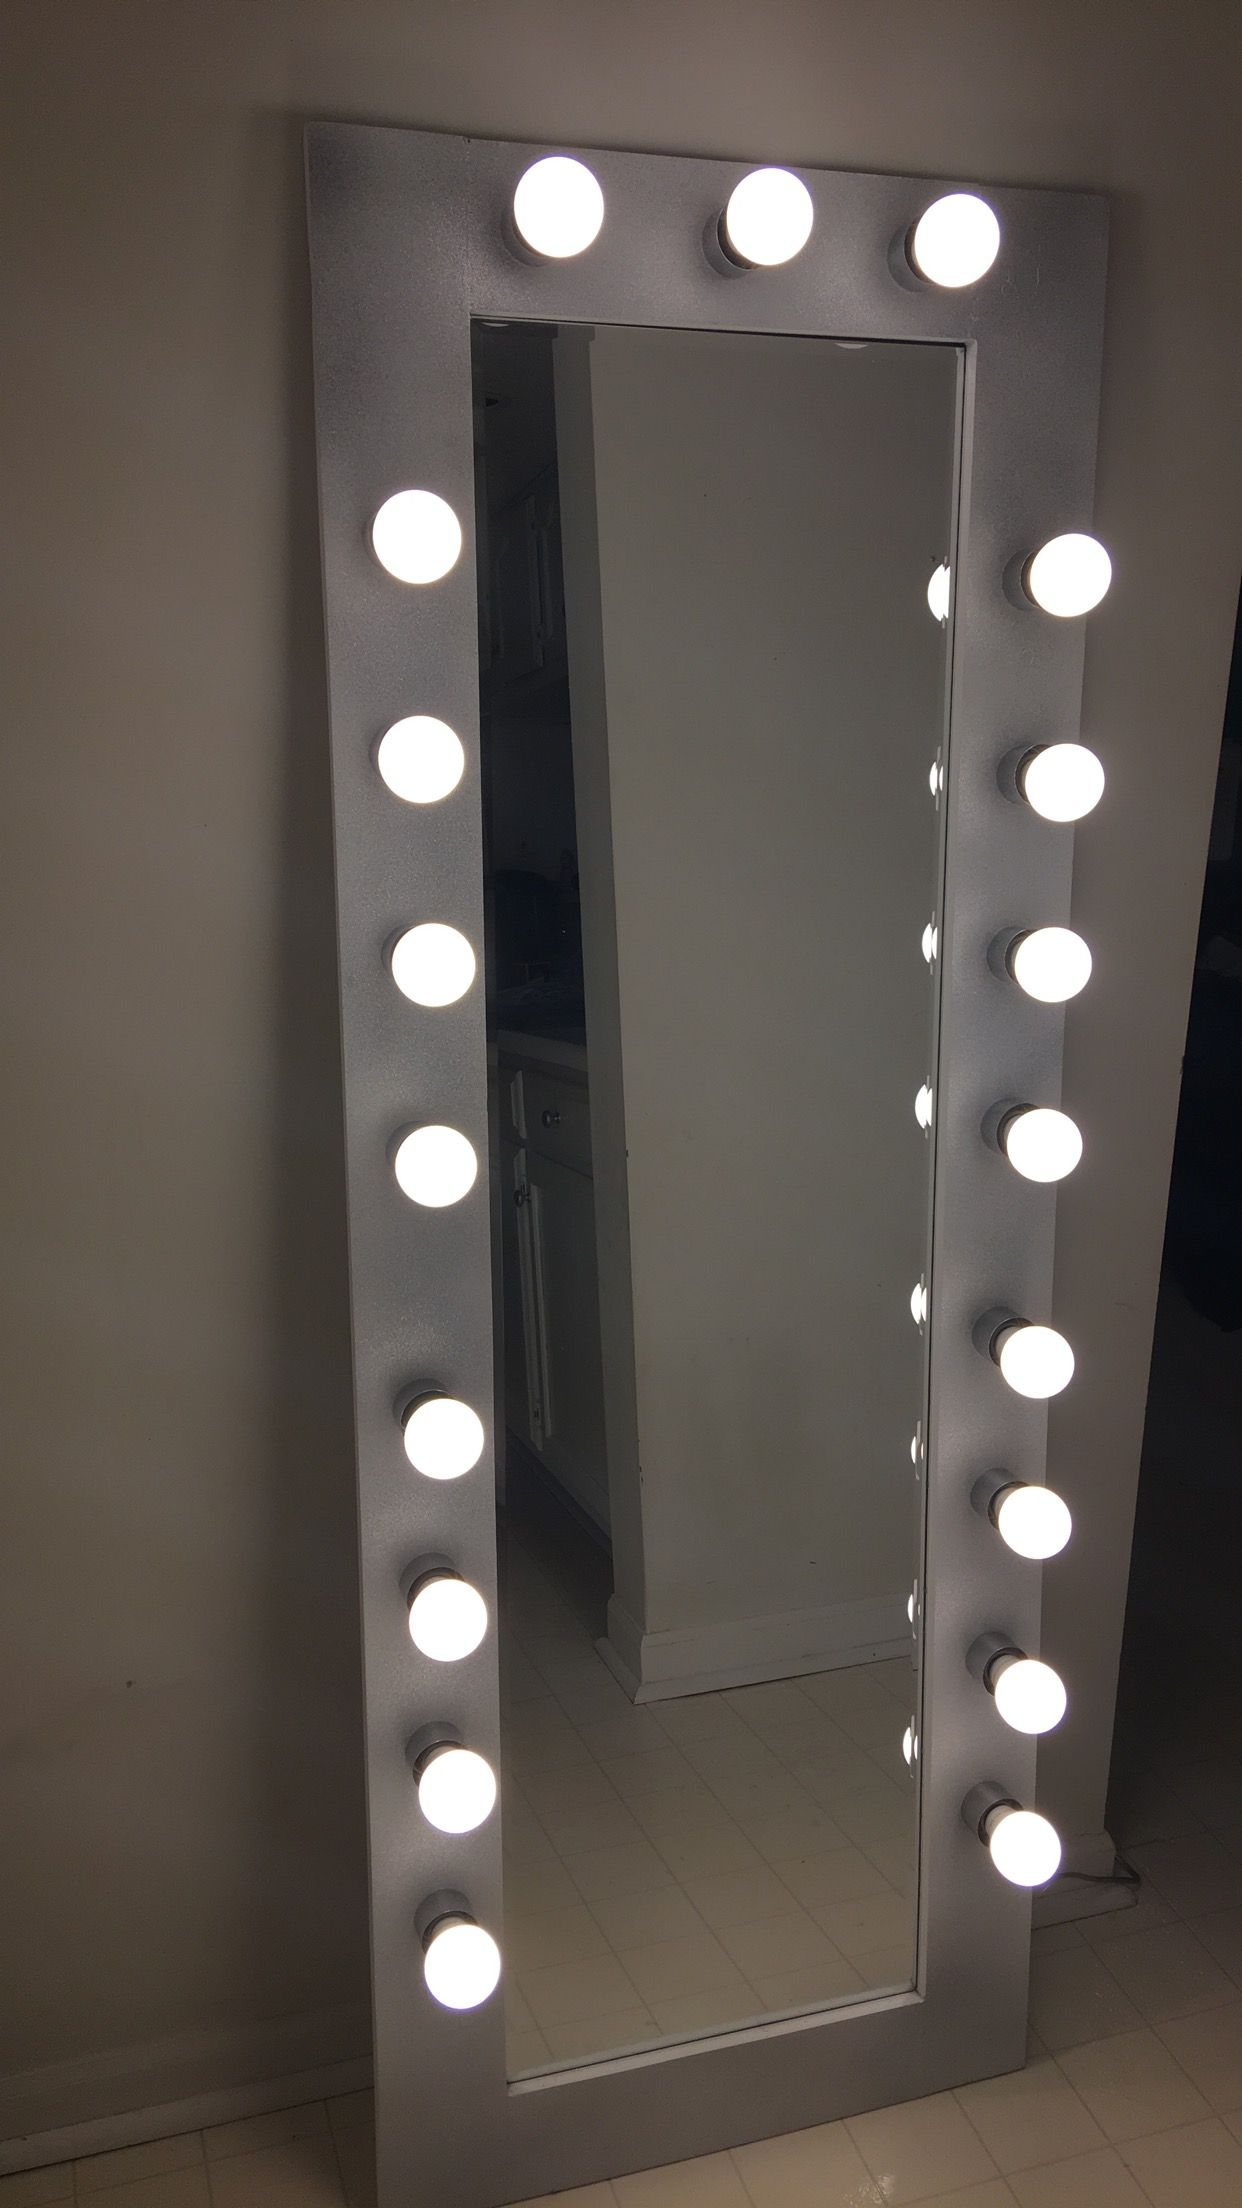 Bt vanity mirror makeup mirror body mirror full body - Bedroom vanity mirror with lights ...